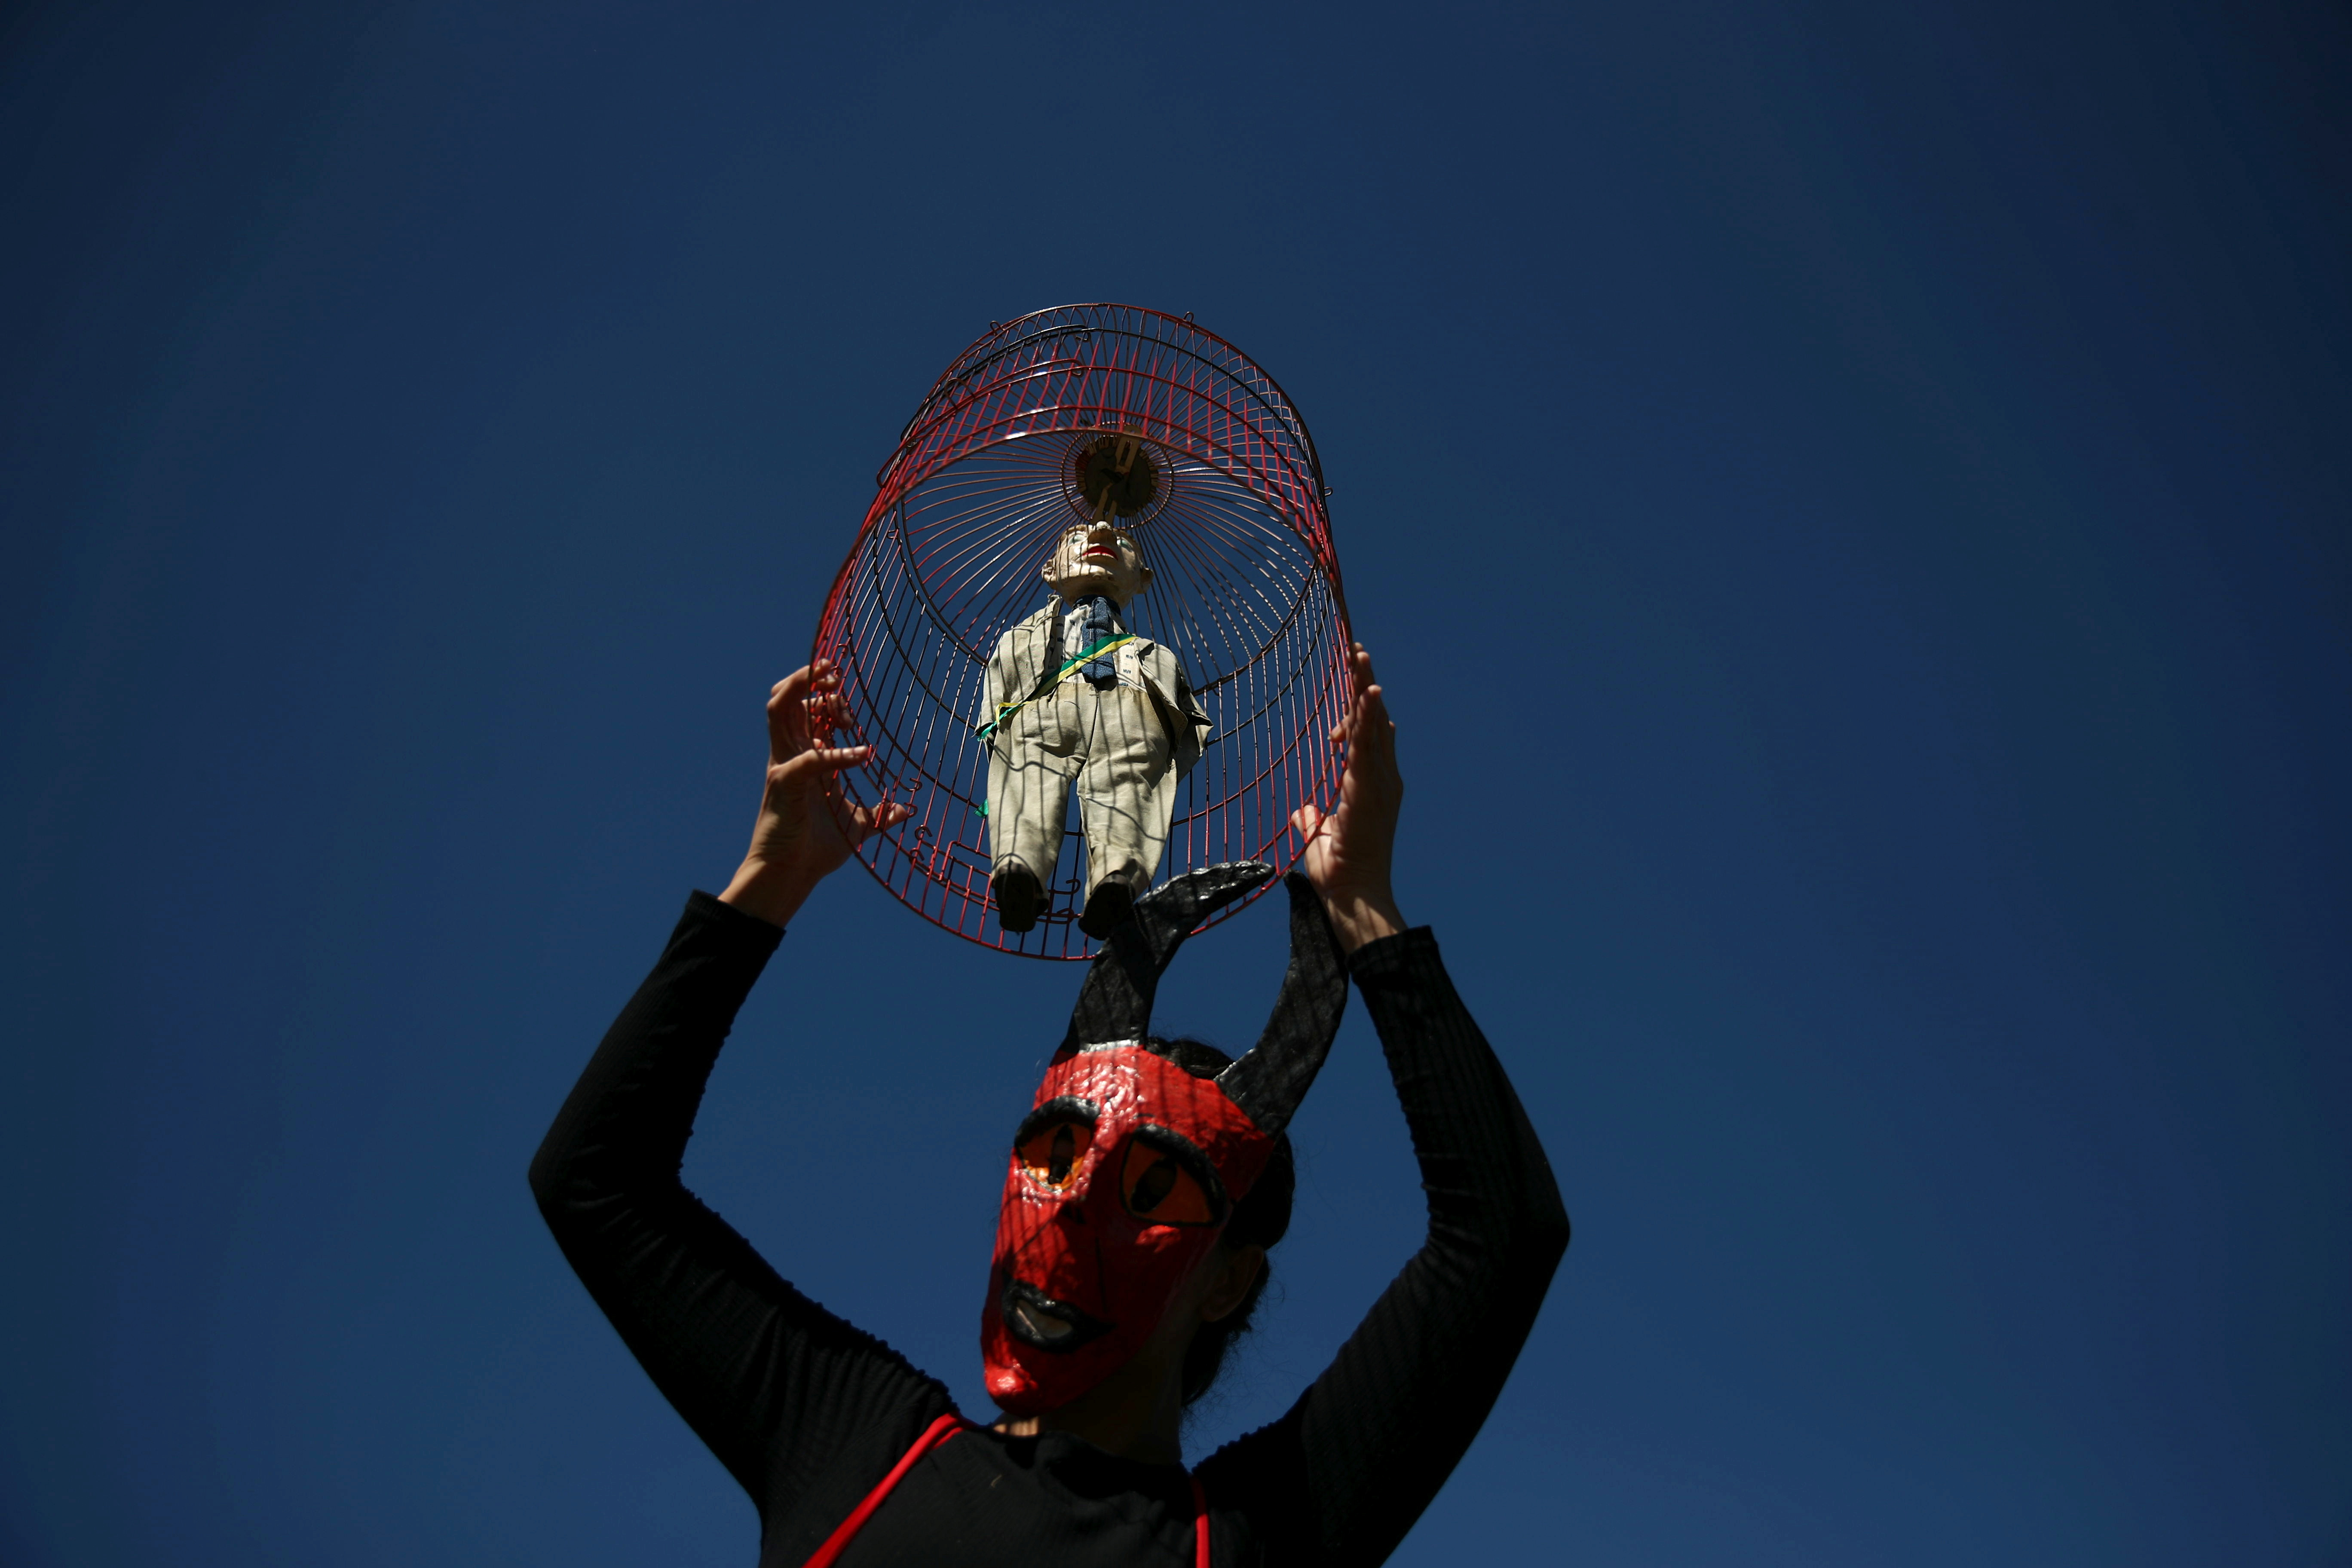 A protestor holds a puppet depicting Brazil's President Jair Bolsonaro during a demonstration against his handling of the coronavirus disease (COVID-19) pandemic and demanding his impeachment, in Rio de Janeiro, Brazil, July 24, 2021. REUTERS/Ricardo Moraes